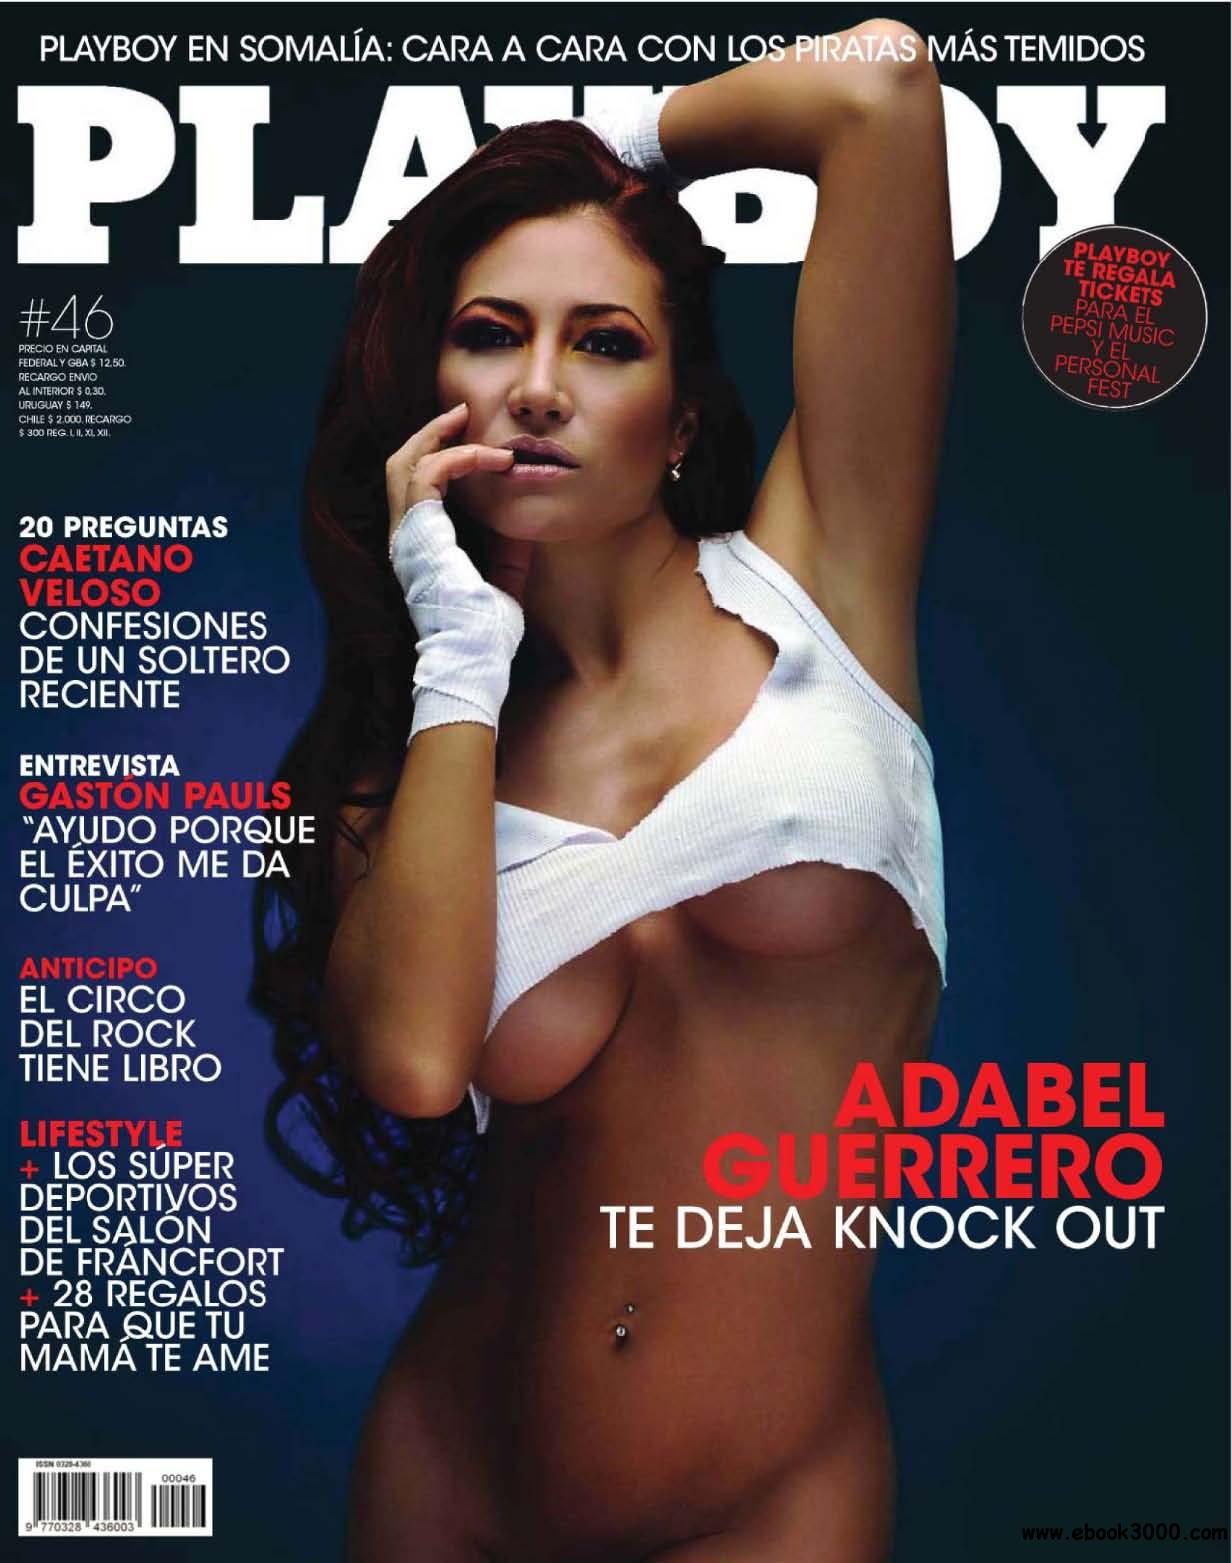 Playboy Argentina - October 2009 free download